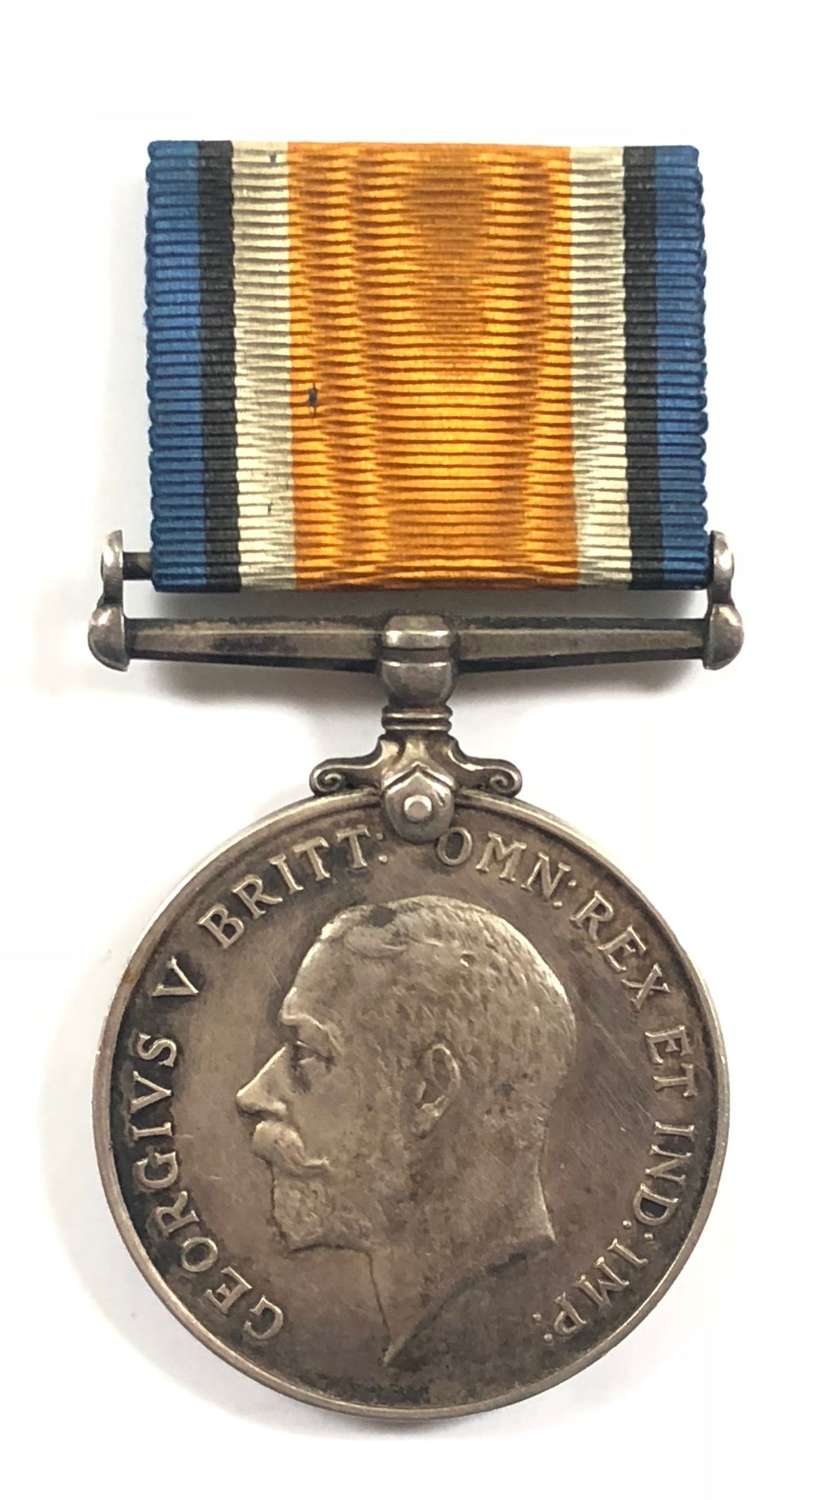 WW1 10th Bn Hampshire Regiment Gallipoli Casualty British War Medal.